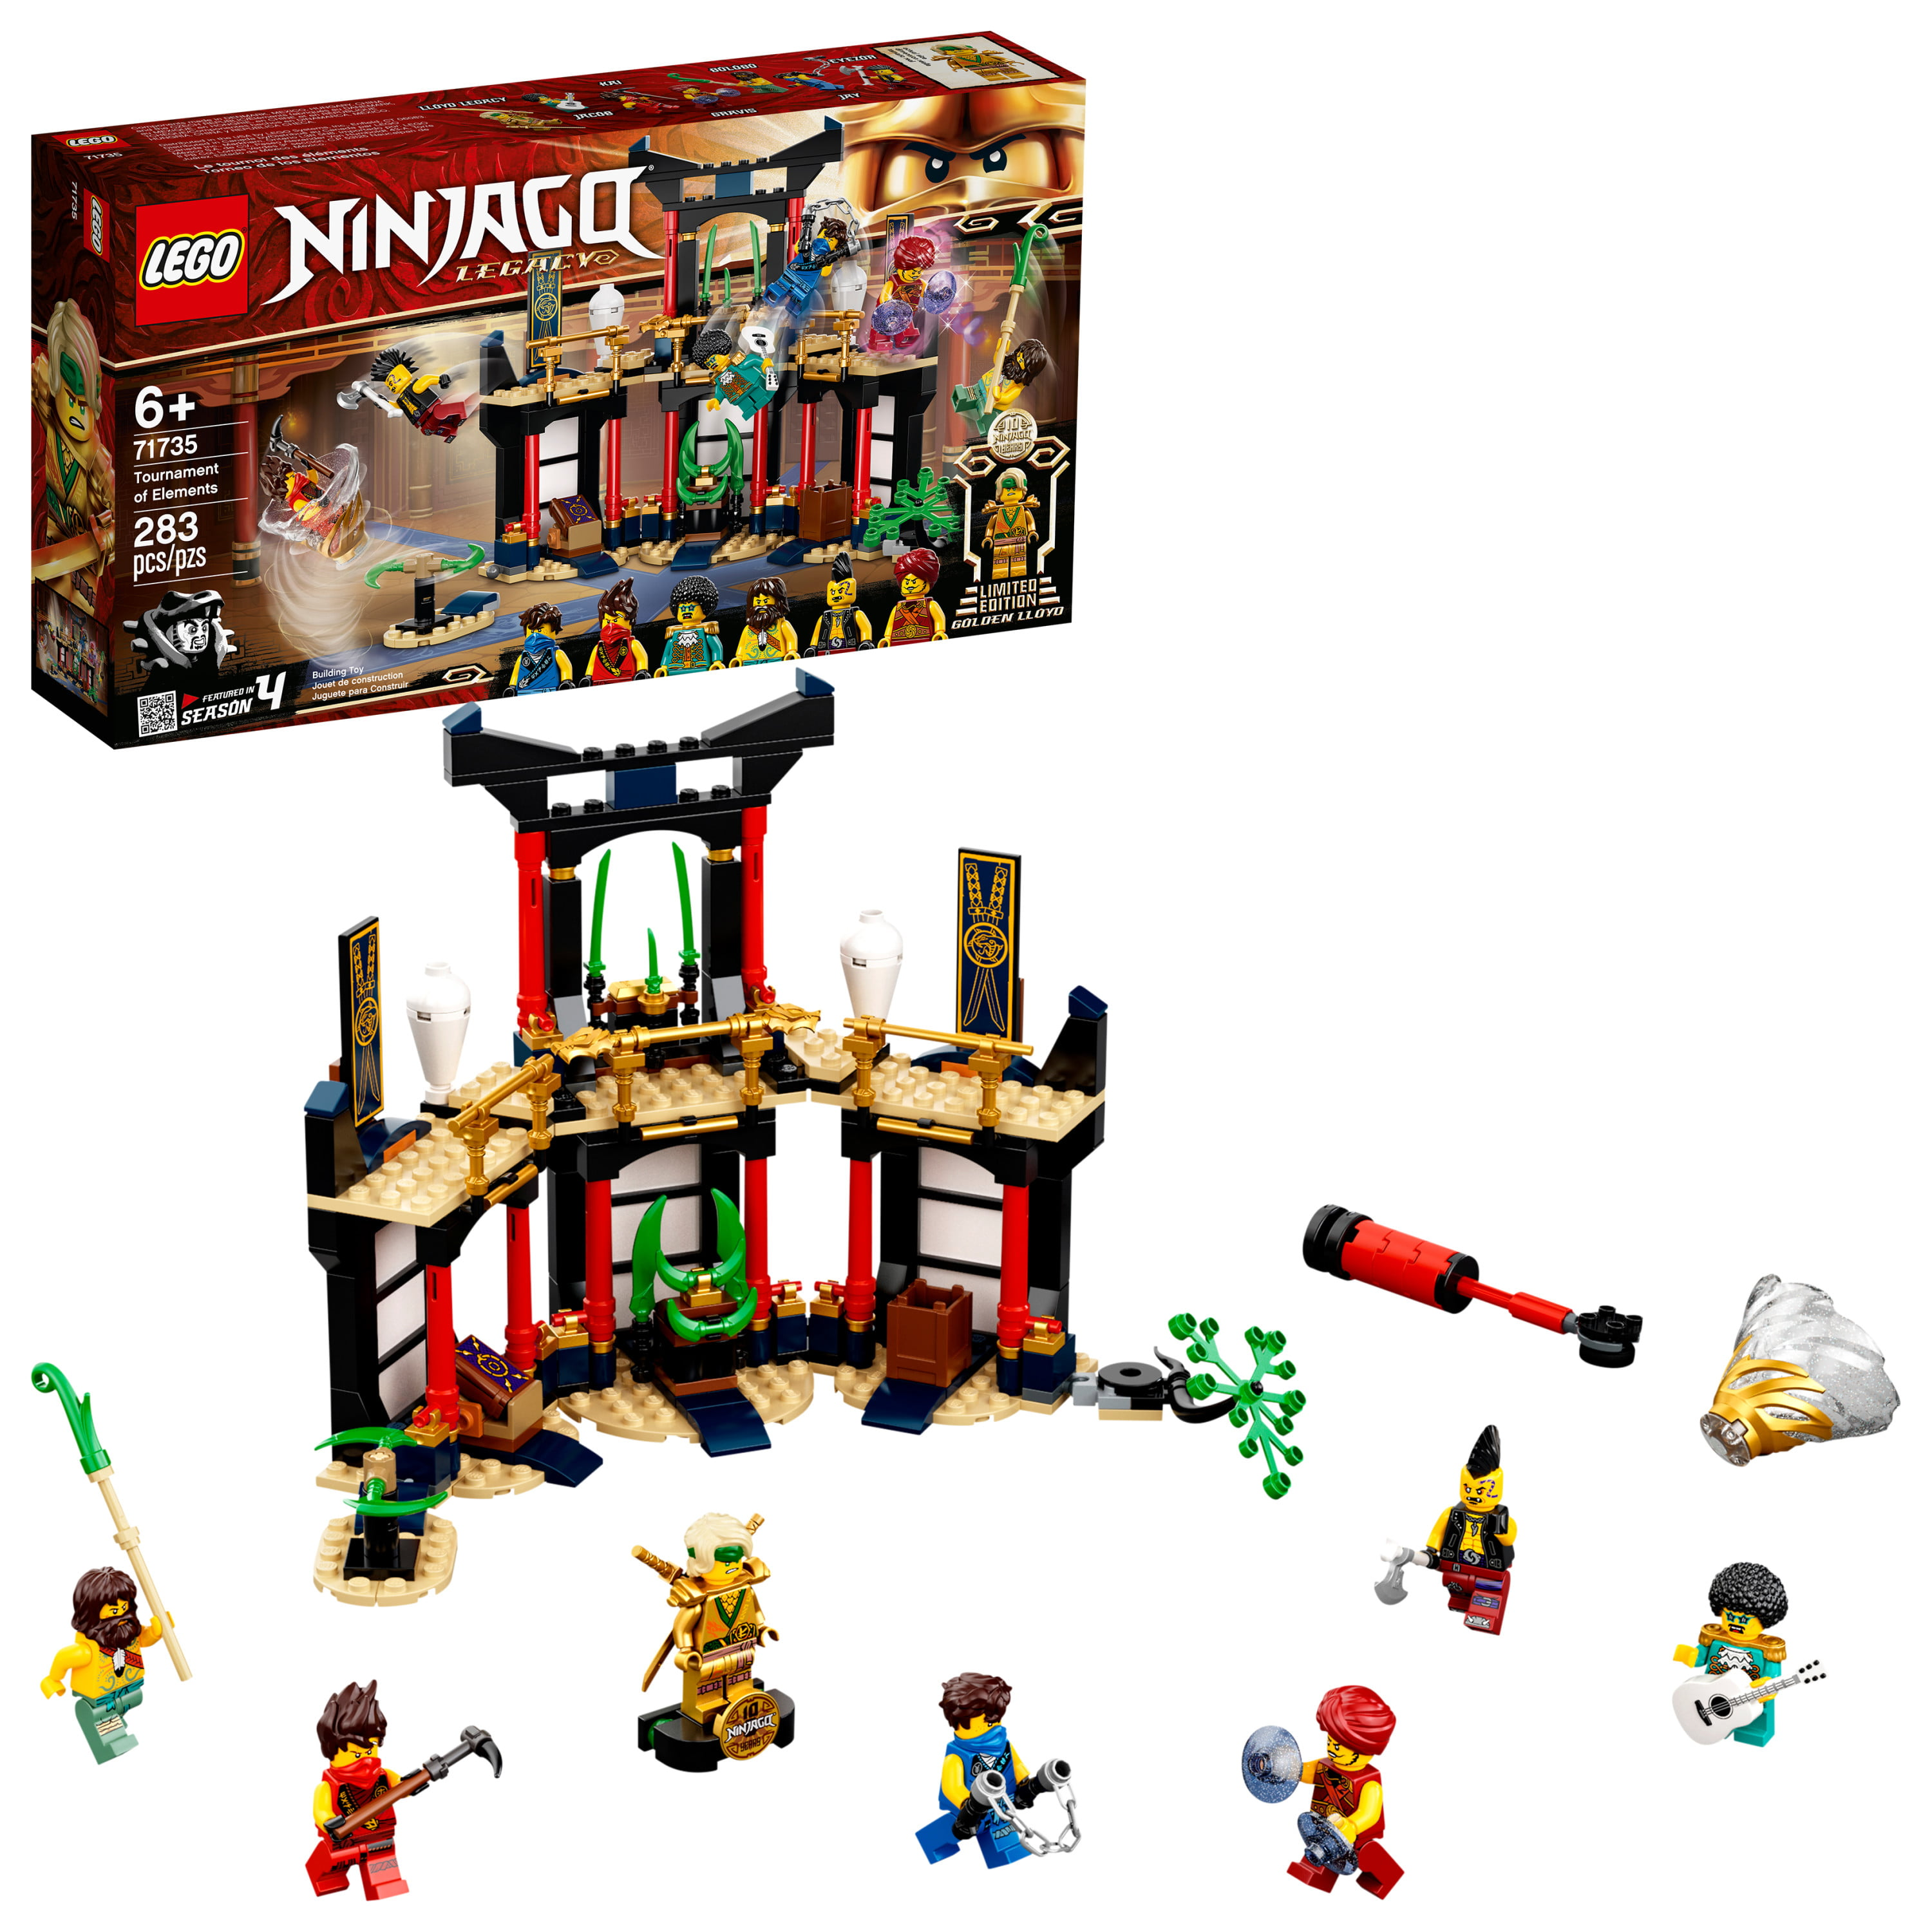 LEGO NINJAGO Legacy Tournament of Elements 71735 Building Toy (283 Pieces)